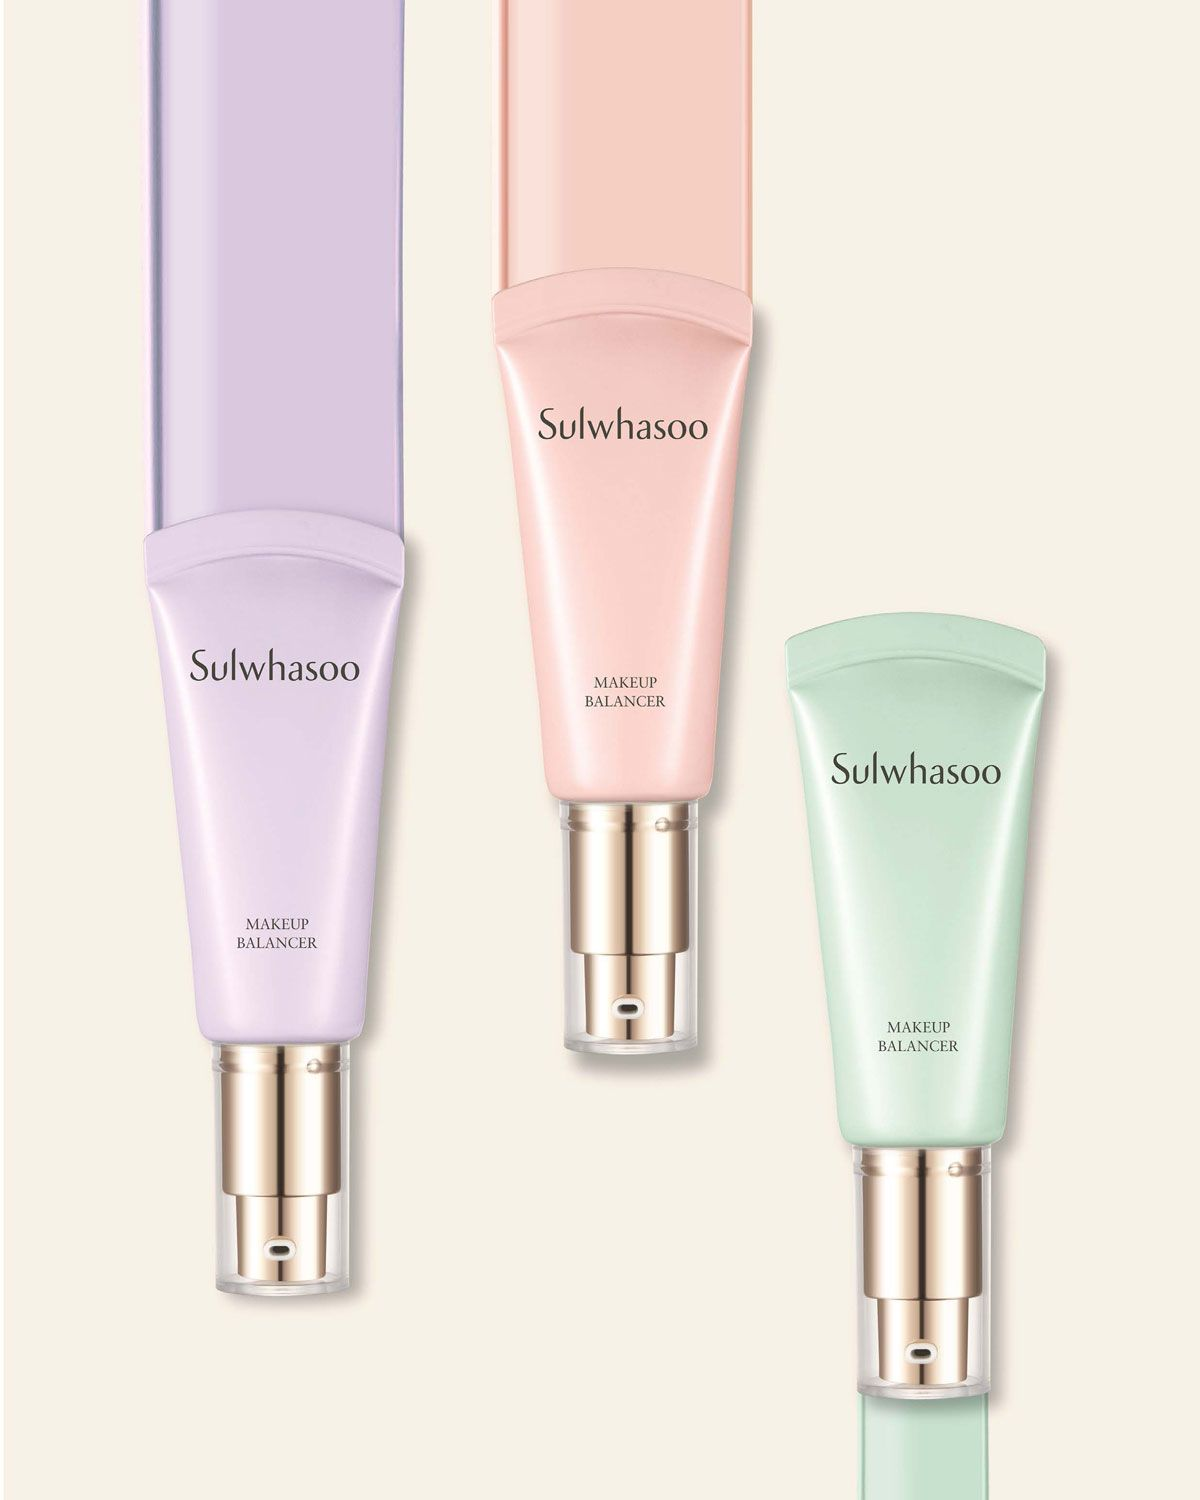 Makeup Balancer by Sulwhasoo